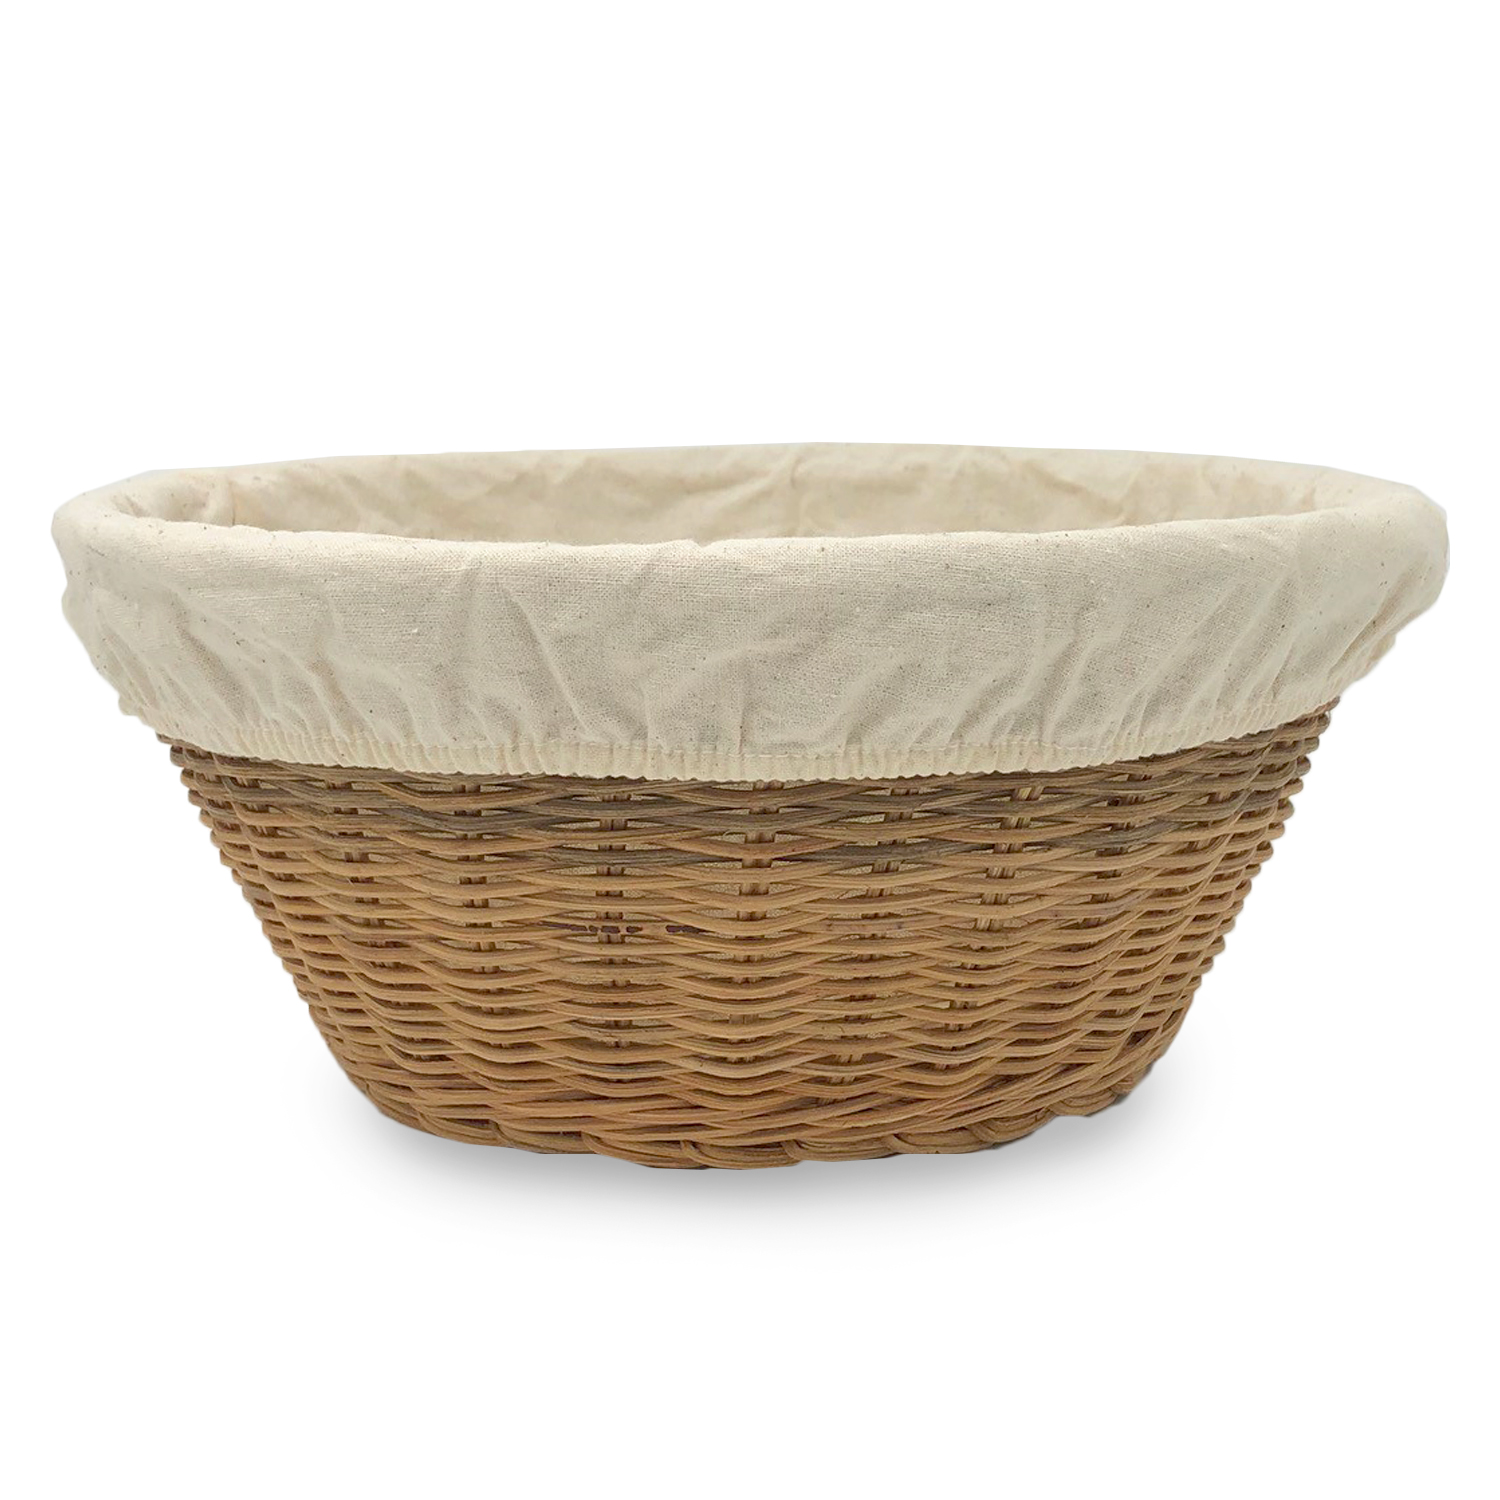 Large Round Rattan Utility Basket with Cloth Liner -Natural 10in